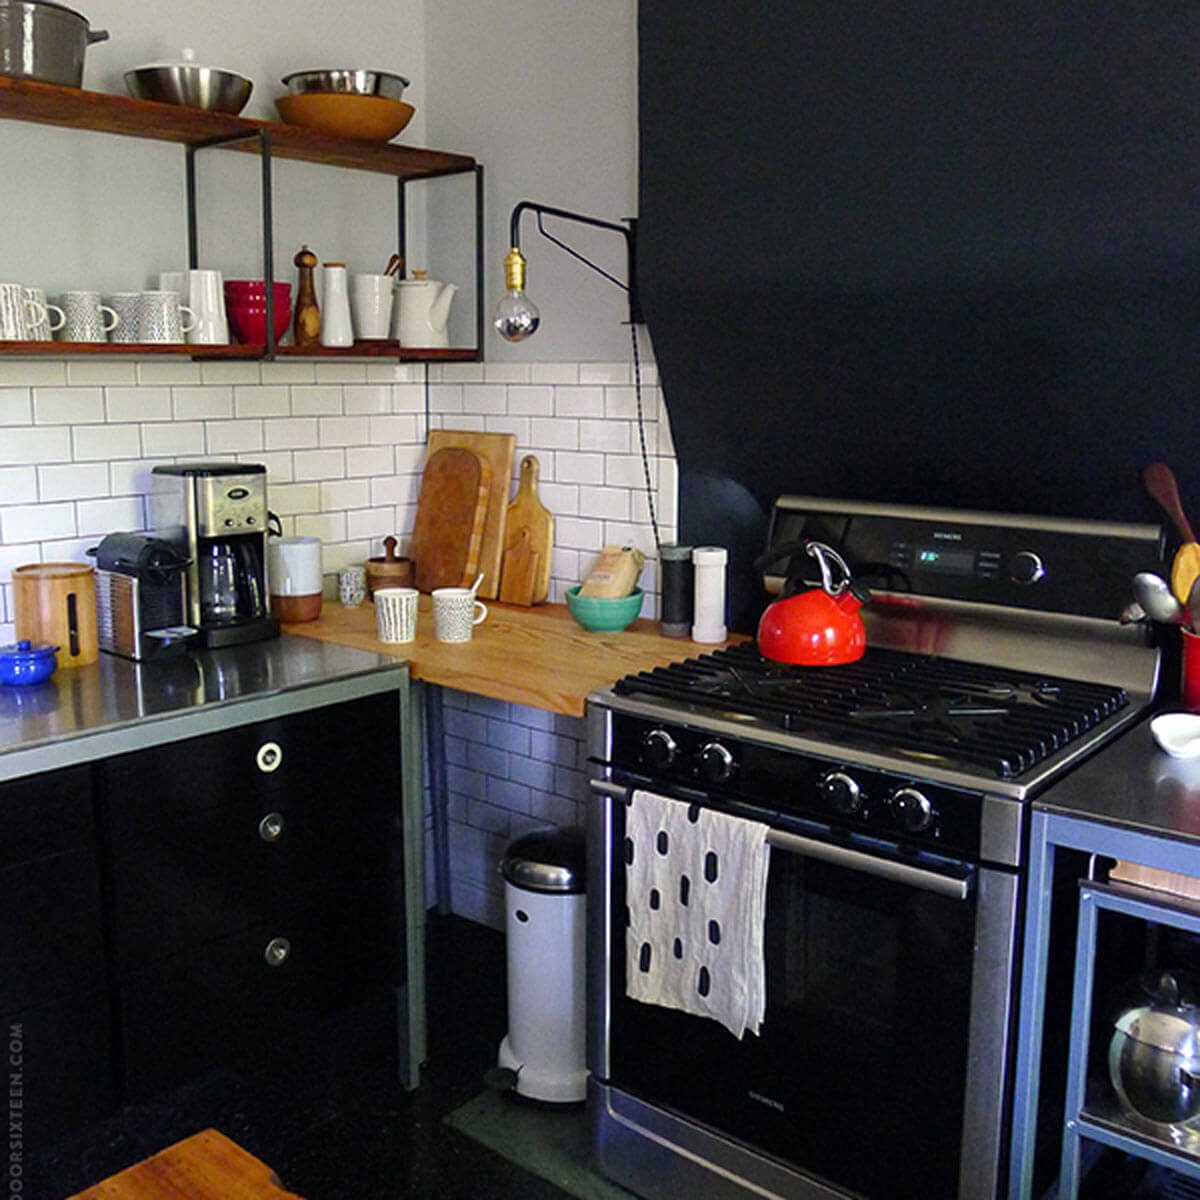 Gap Between Stove And Countertop 10 Tips To Get More Kitchen Counter Space The Family